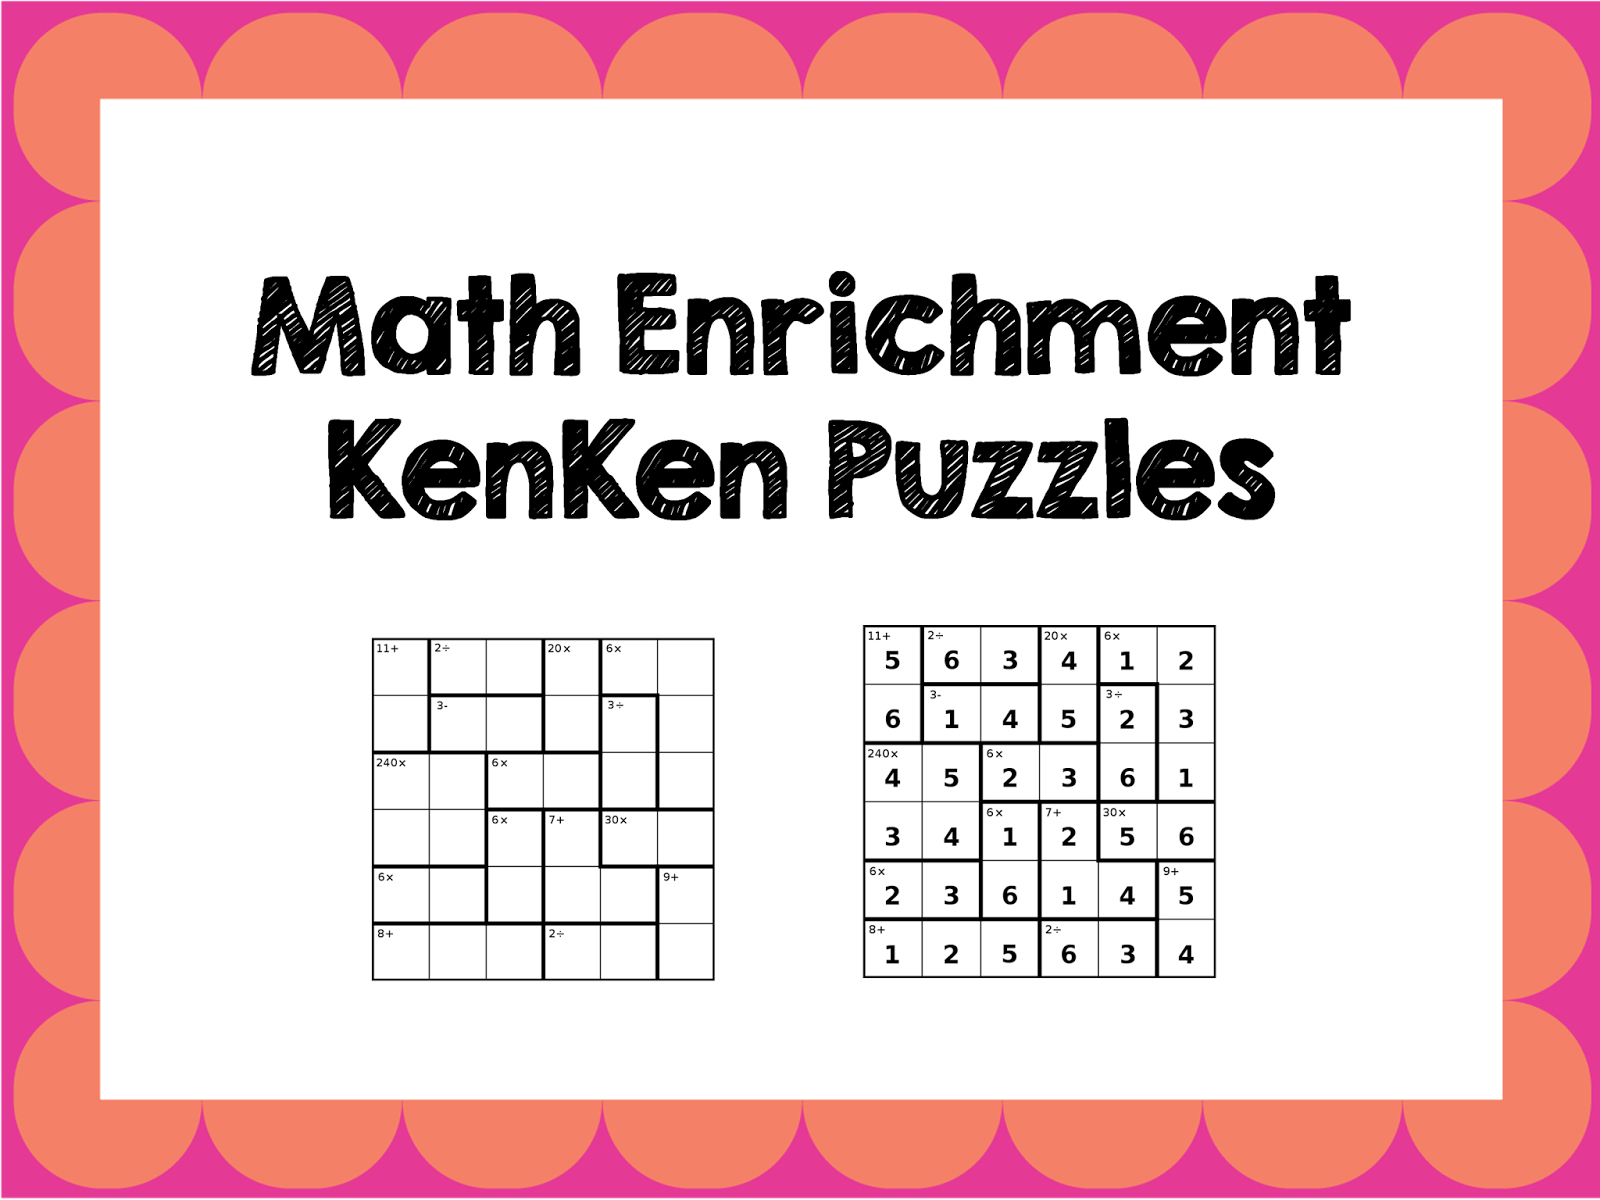 Math Enrichment Freebies - Kenken Puzzles | Ed - Math | Math - Printable Kenken Puzzles